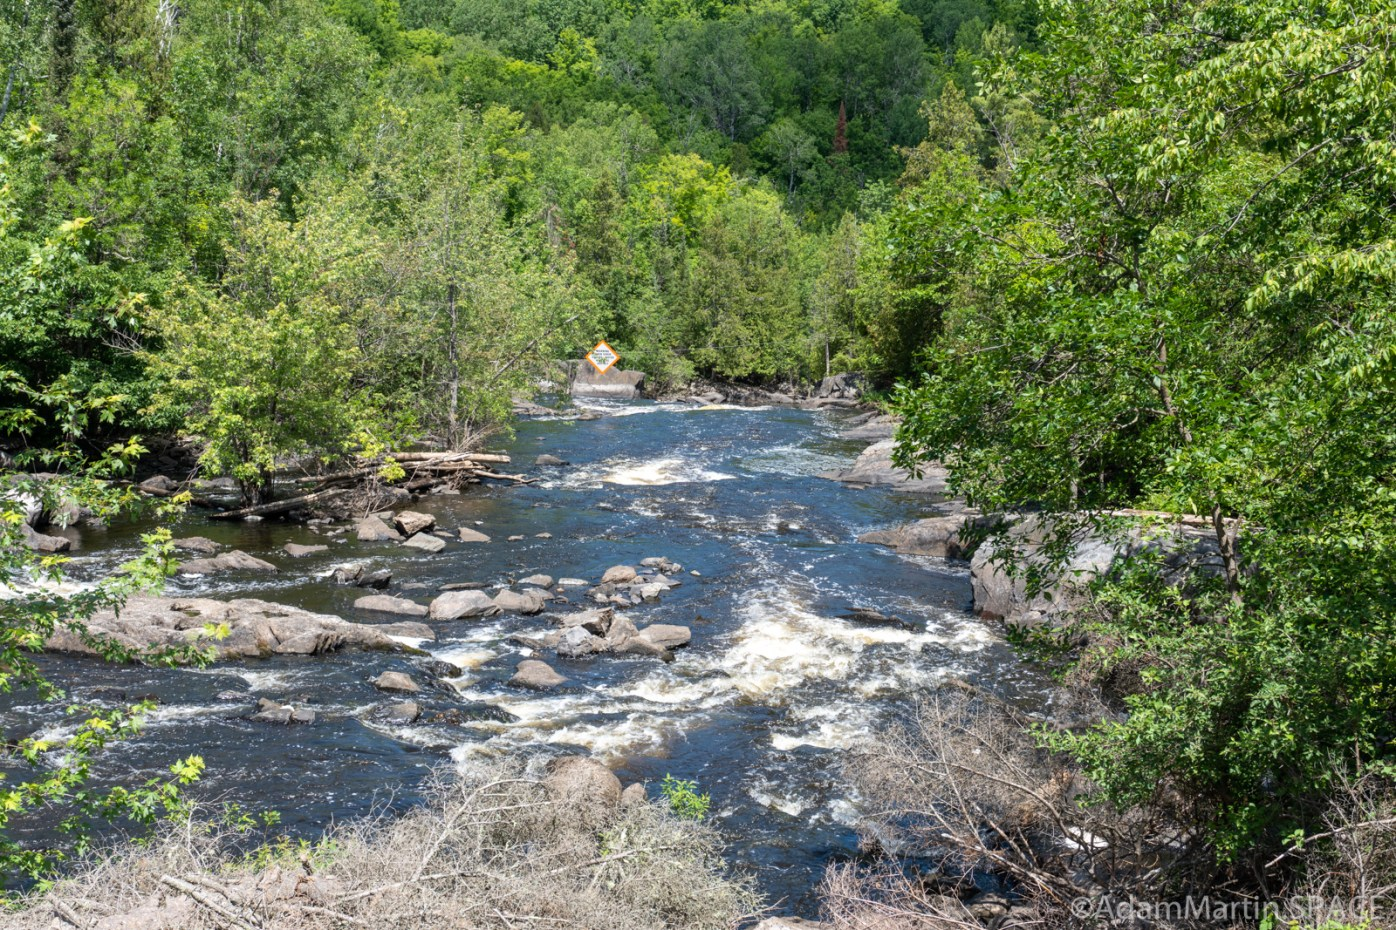 Breakwater Falls - Downstream views